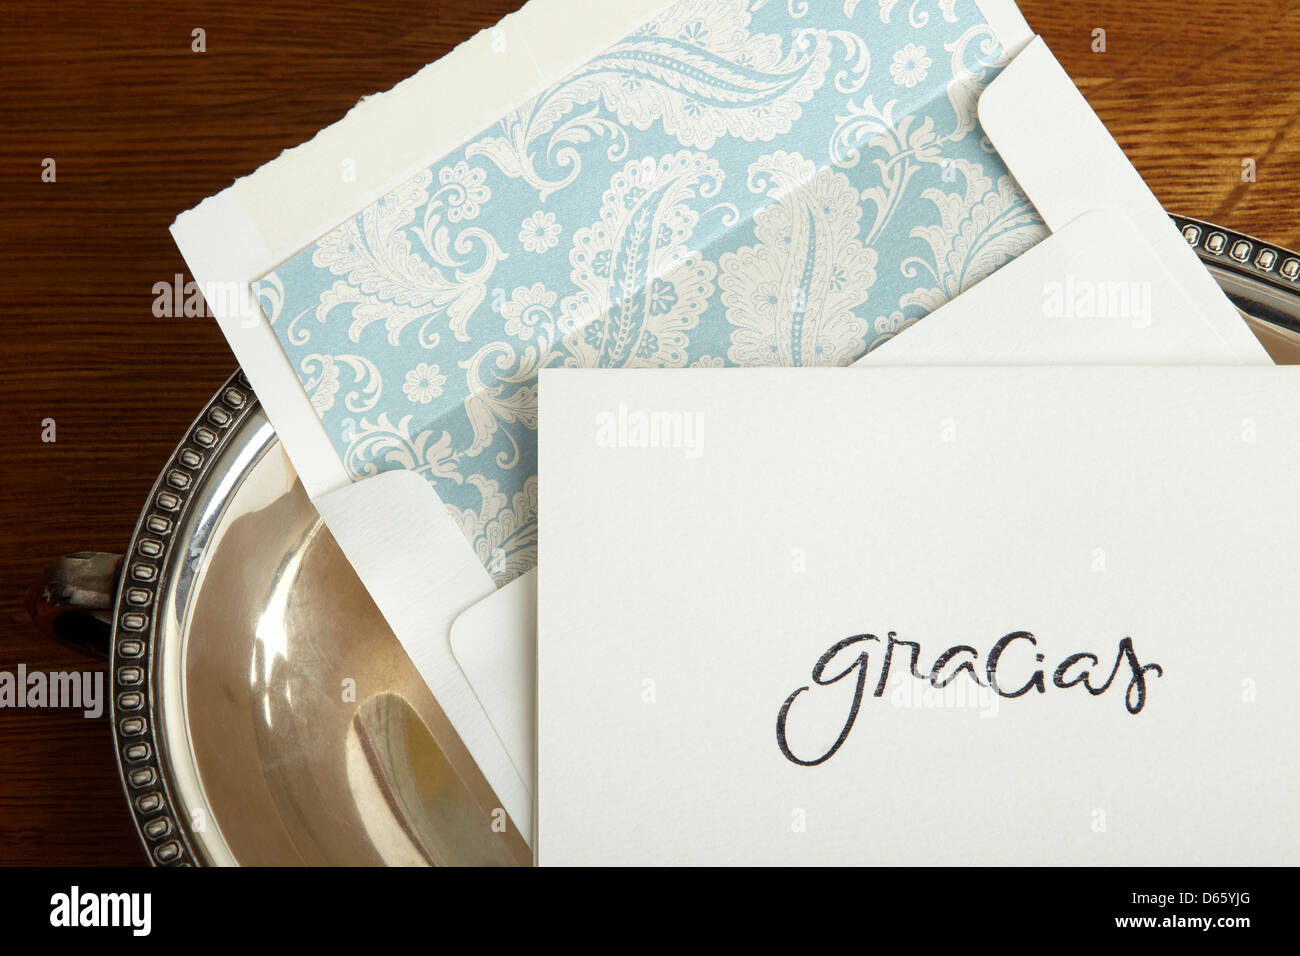 Gracias, thank you note on silver tray. - Stock Image